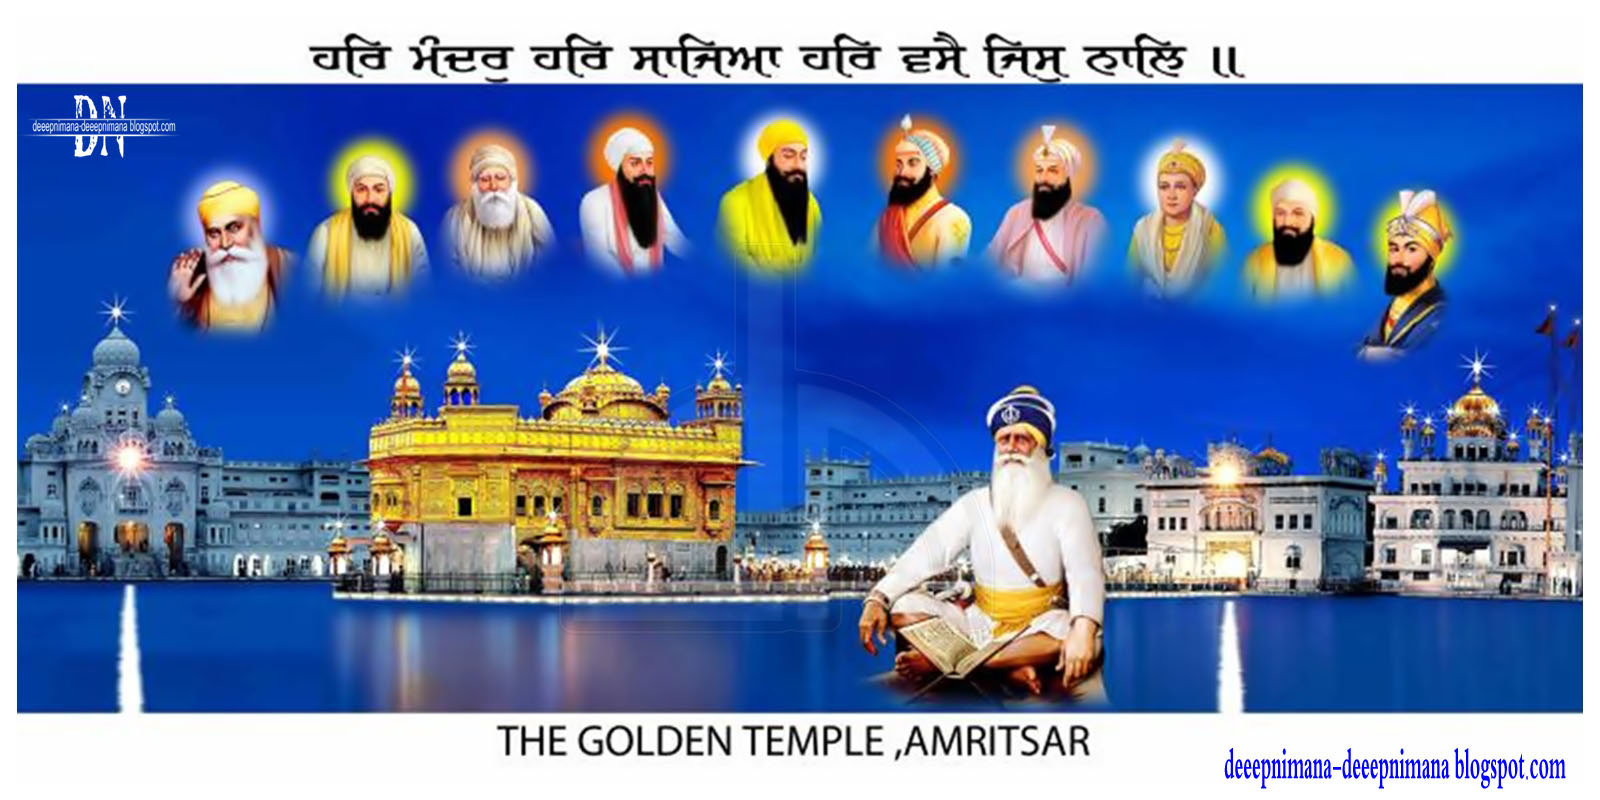 Sikh Guru Angad Related Keywords & Suggestions - Sikh Guru Angad Long ...